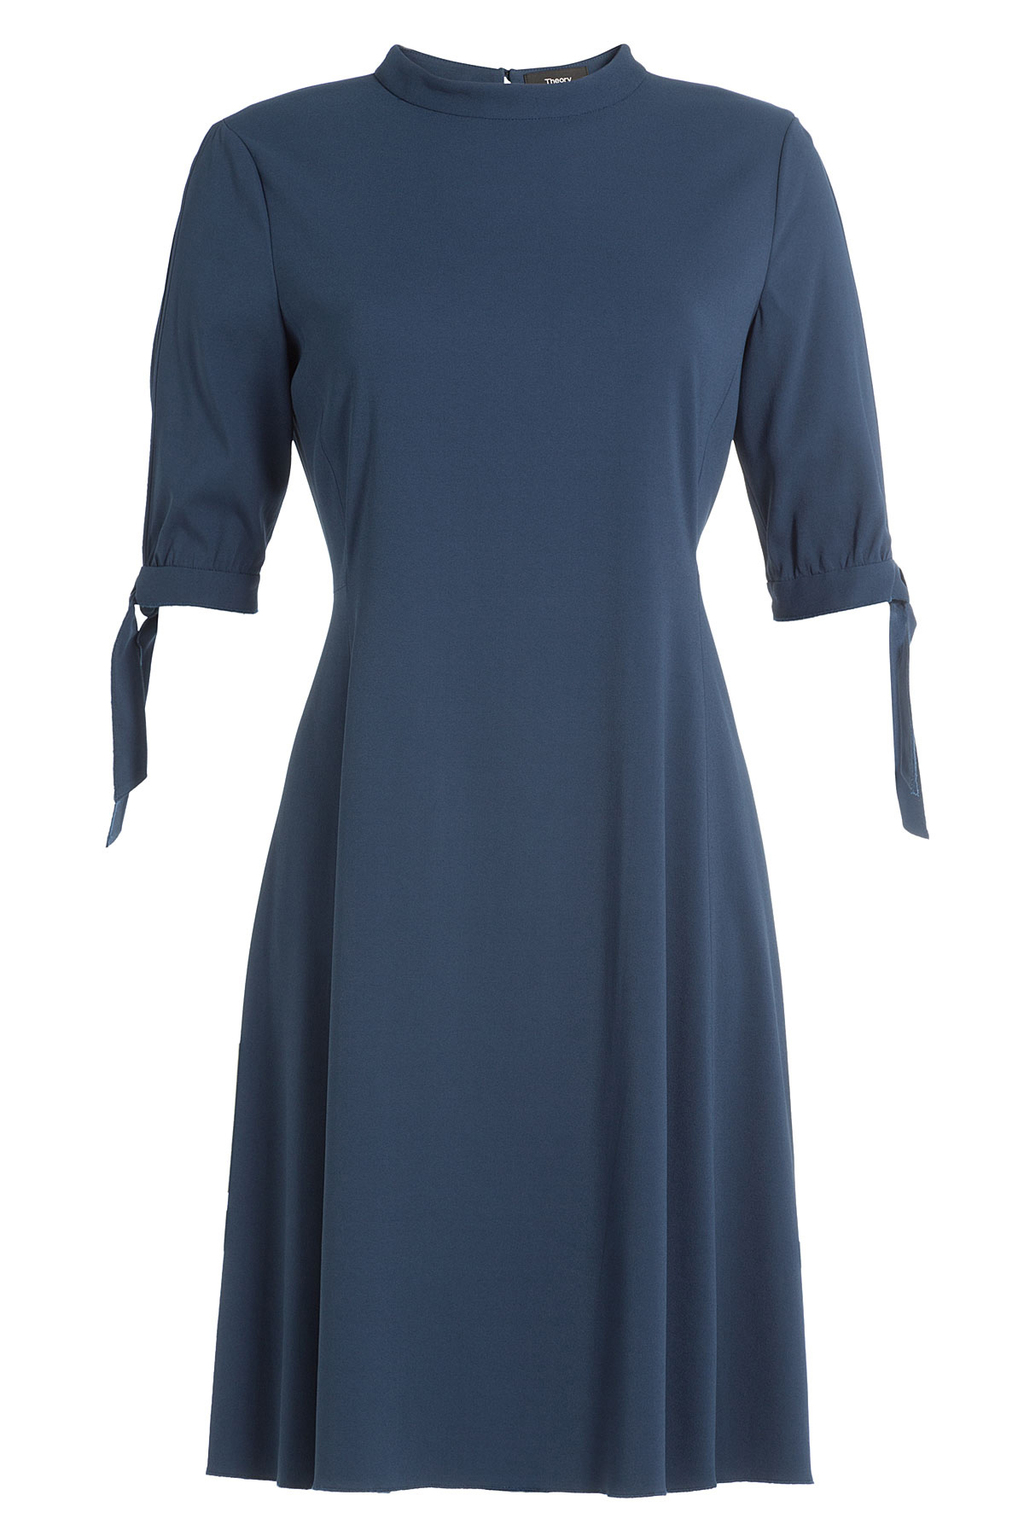 Crepe Dress - pattern: plain; neckline: high neck; predominant colour: royal blue; occasions: evening; length: just above the knee; fit: fitted at waist & bust; style: fit & flare; fibres: viscose/rayon - stretch; sleeve length: short sleeve; sleeve style: standard; texture group: crepes; pattern type: fabric; season: a/w 2016; wardrobe: event